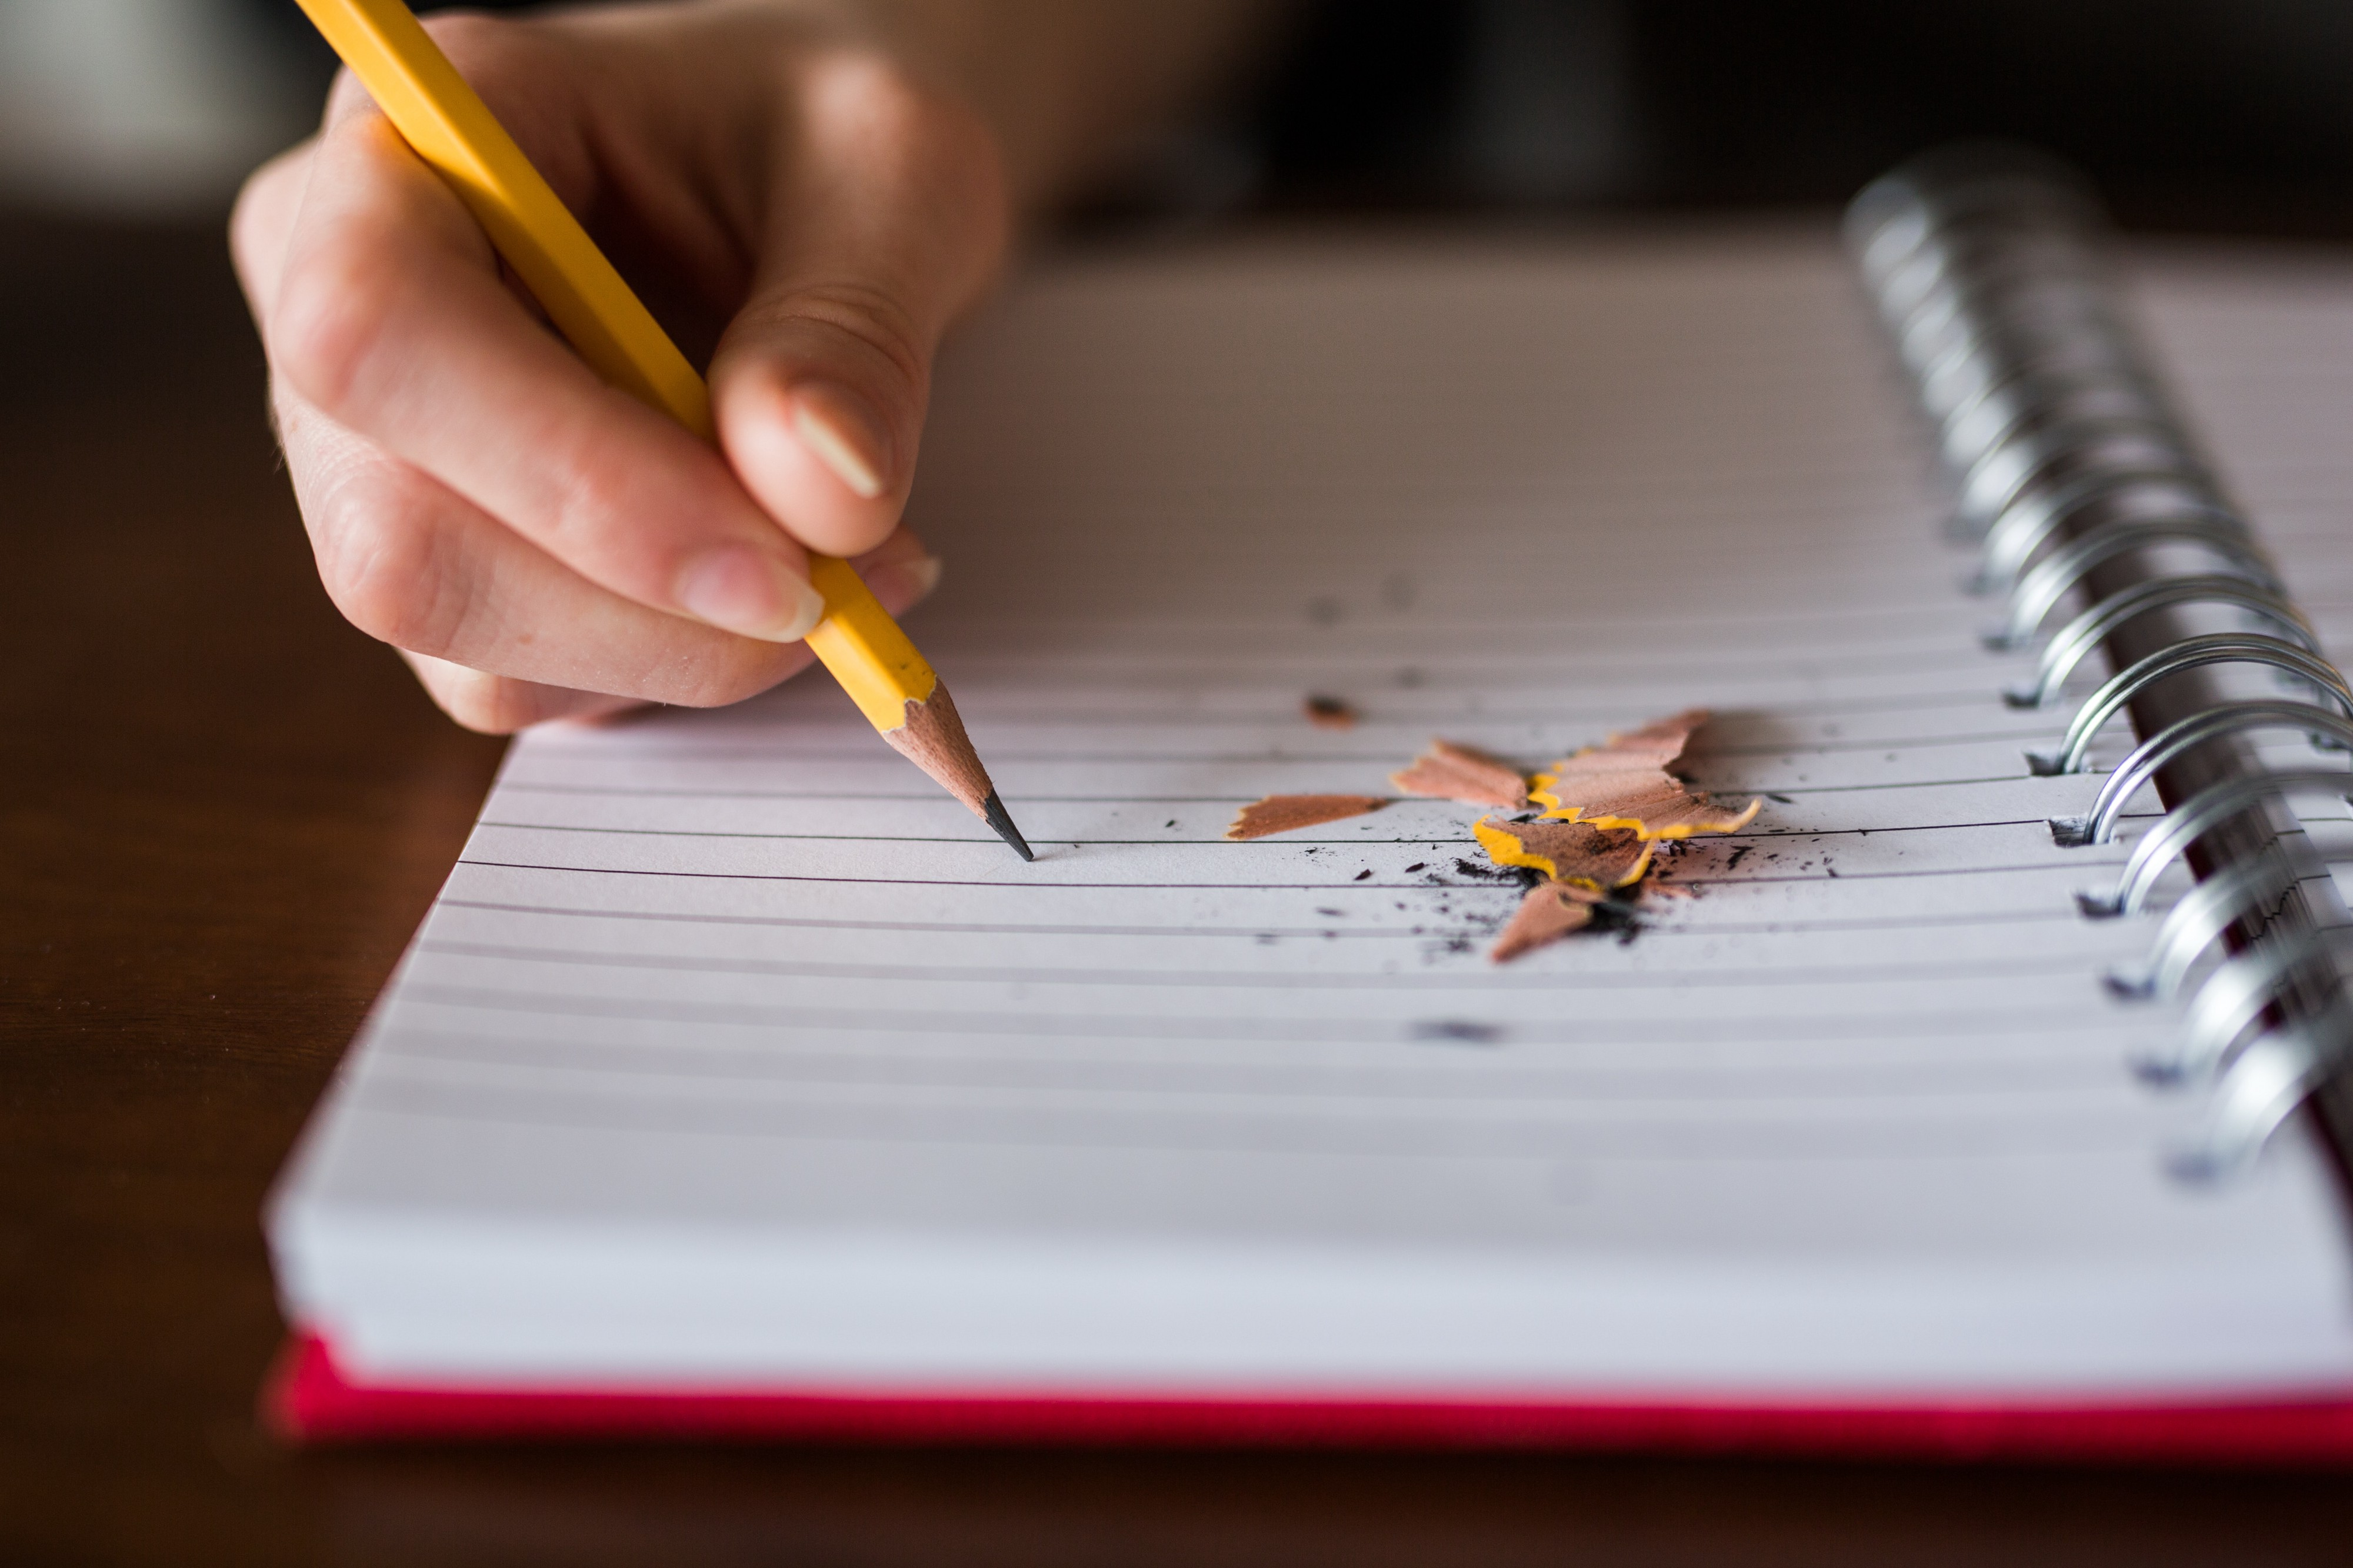 Image of a hand holding a sharpened yellow pencil on a notebook. The sharpening waste is visible on the notebook.